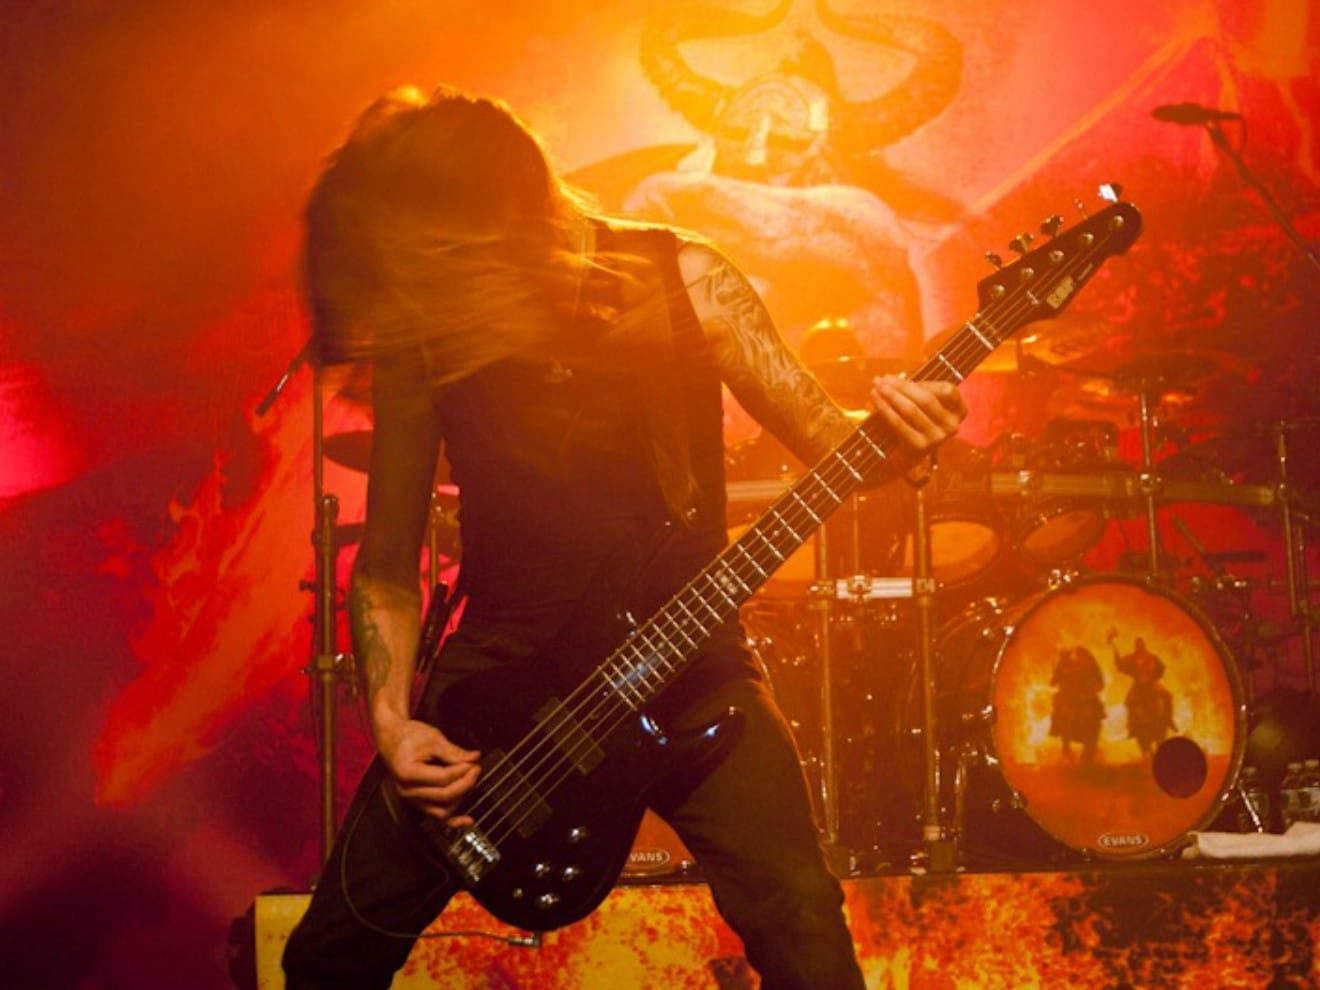 Heavy Metal's Portrayal of Warfare Obsession and Sonic Violence